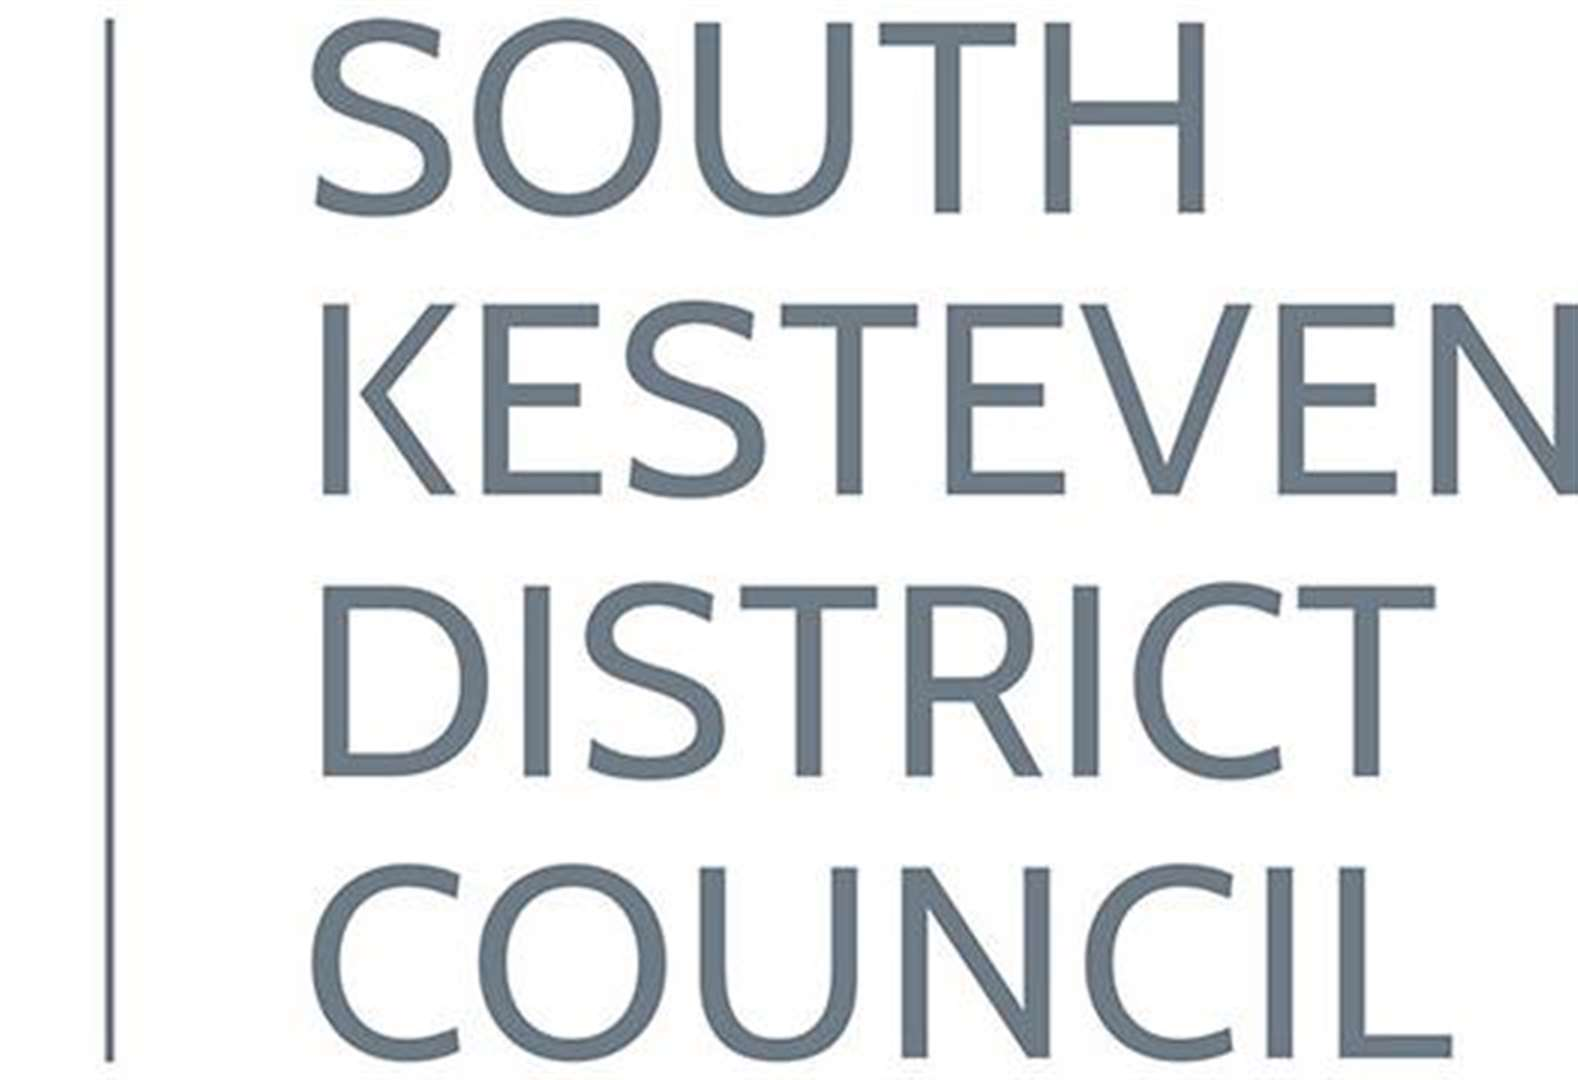 District council company will pay new assistant chief executive £65,000